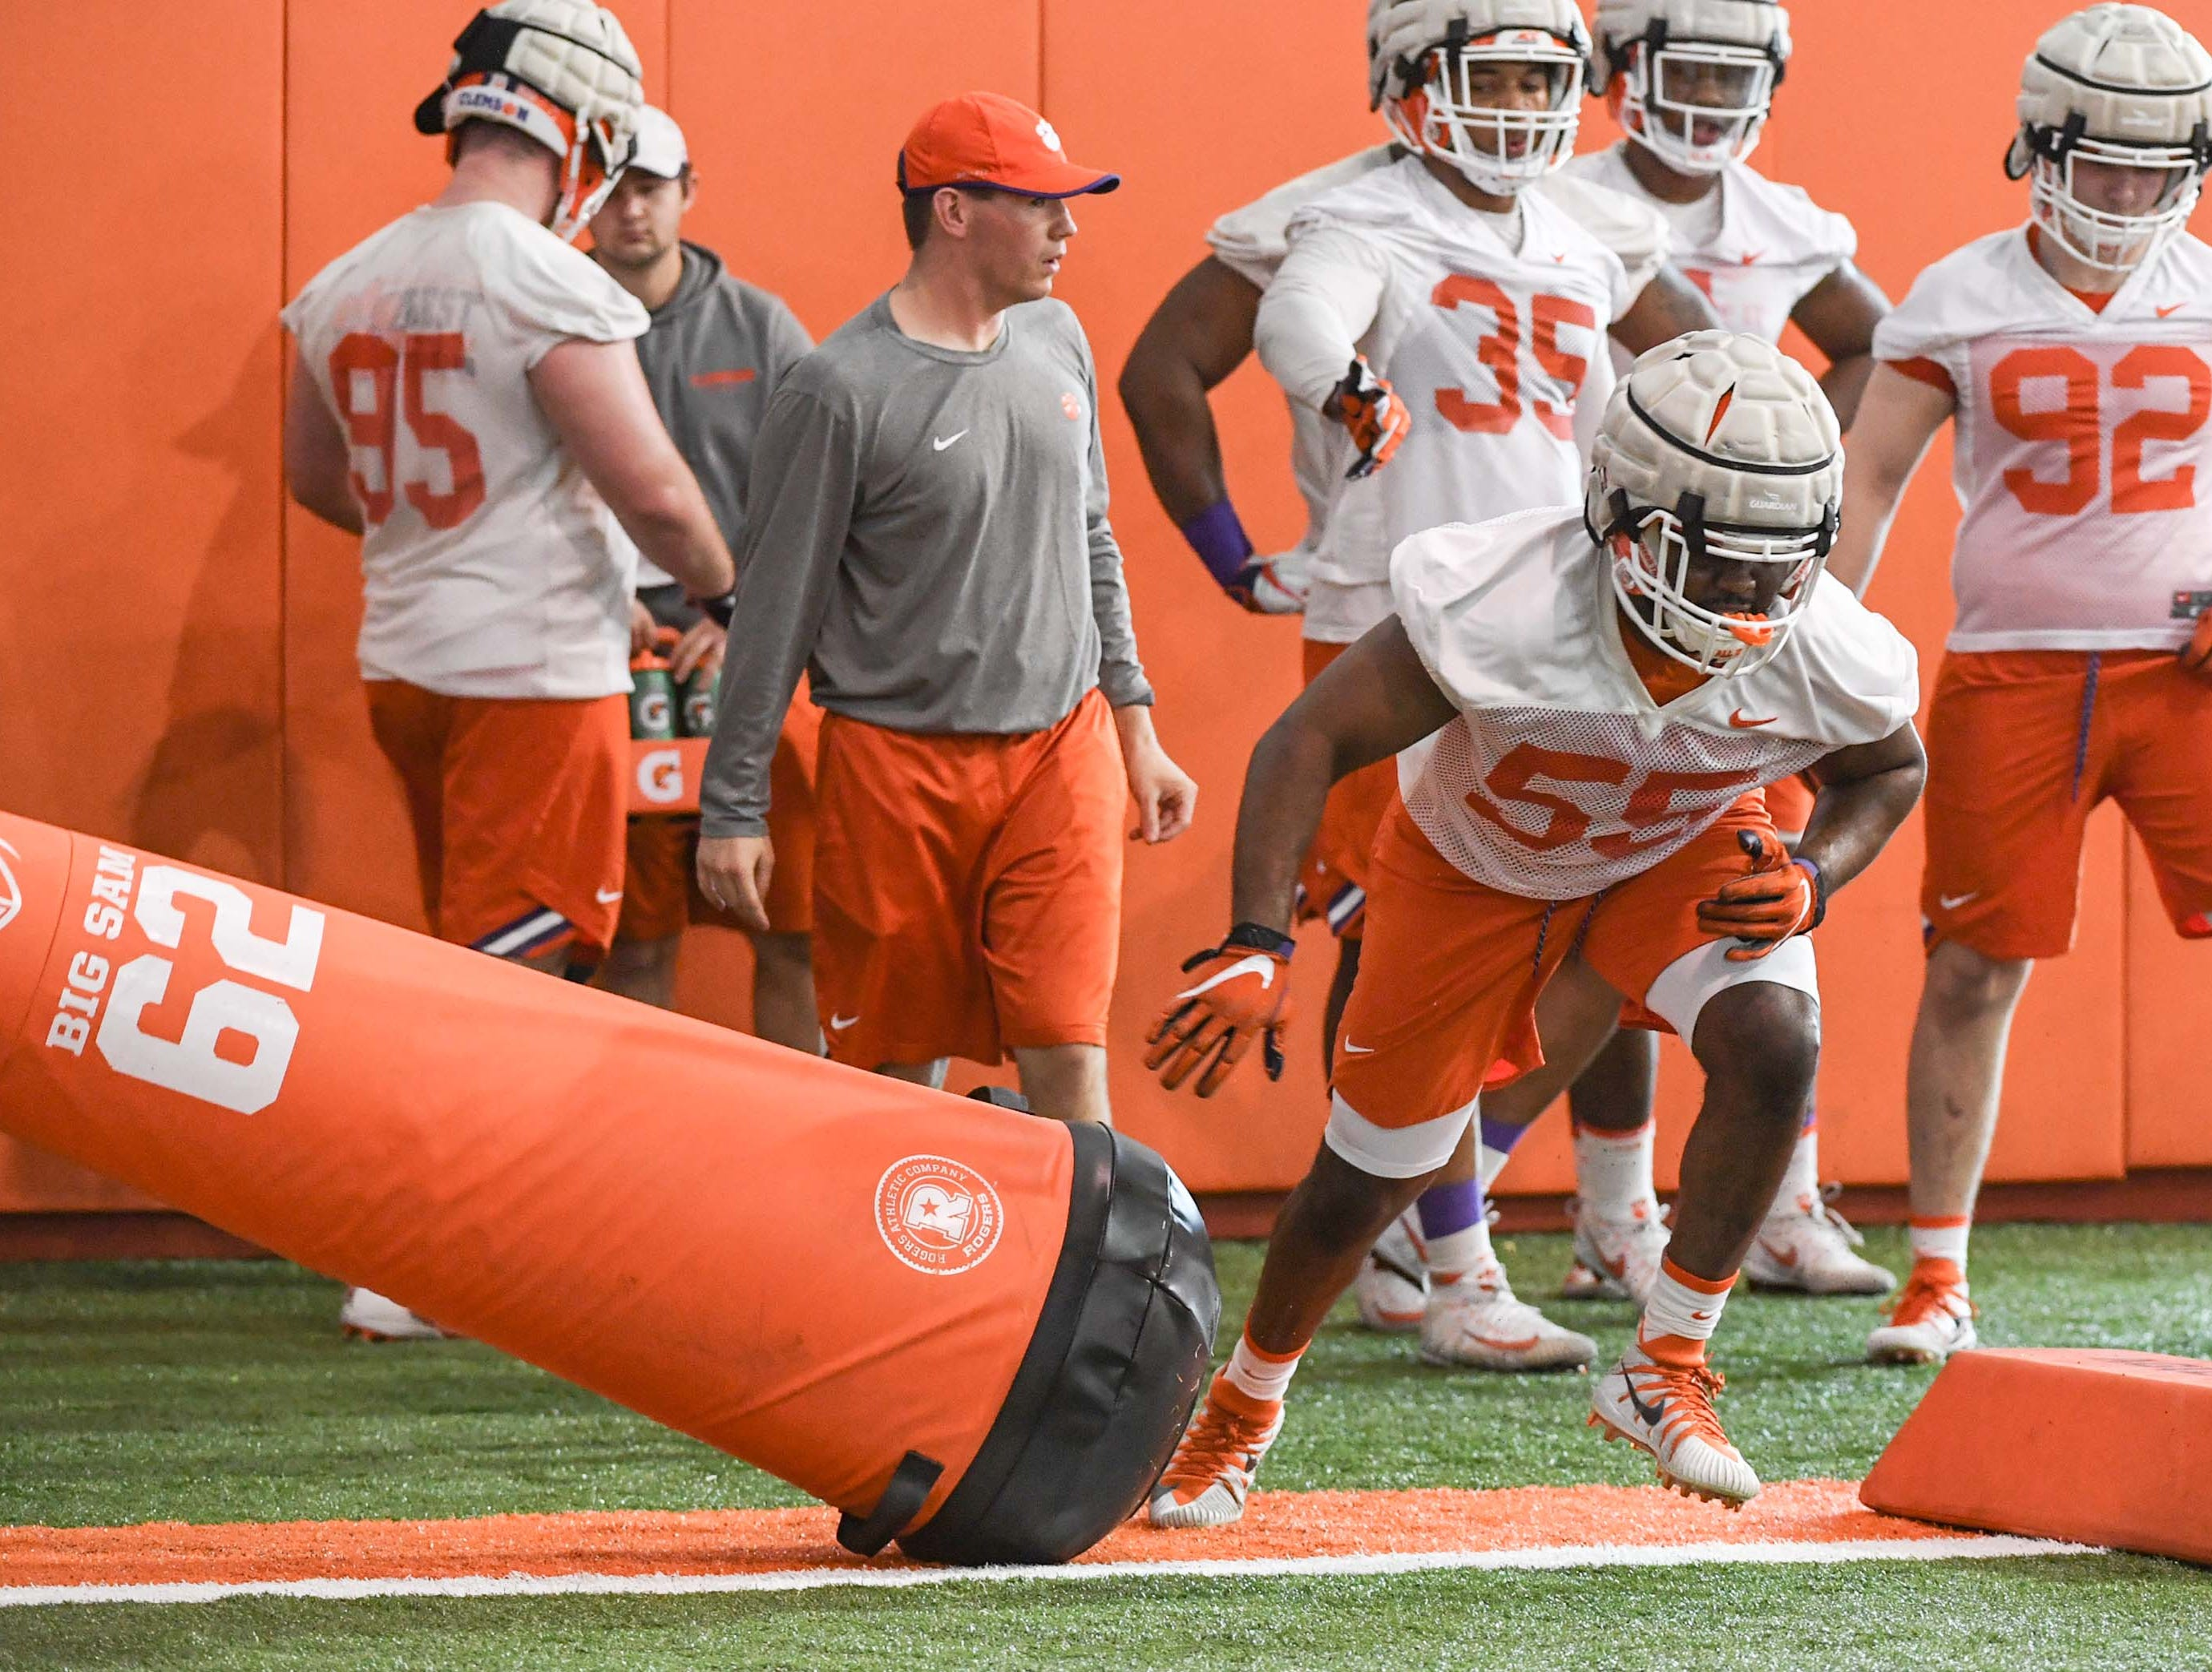 Clemson defensive lineman Stan Jones Jr. (55) during the first practice at the Clemson Indoor Practice Facility in Clemson Wednesday, February 27, 2019.